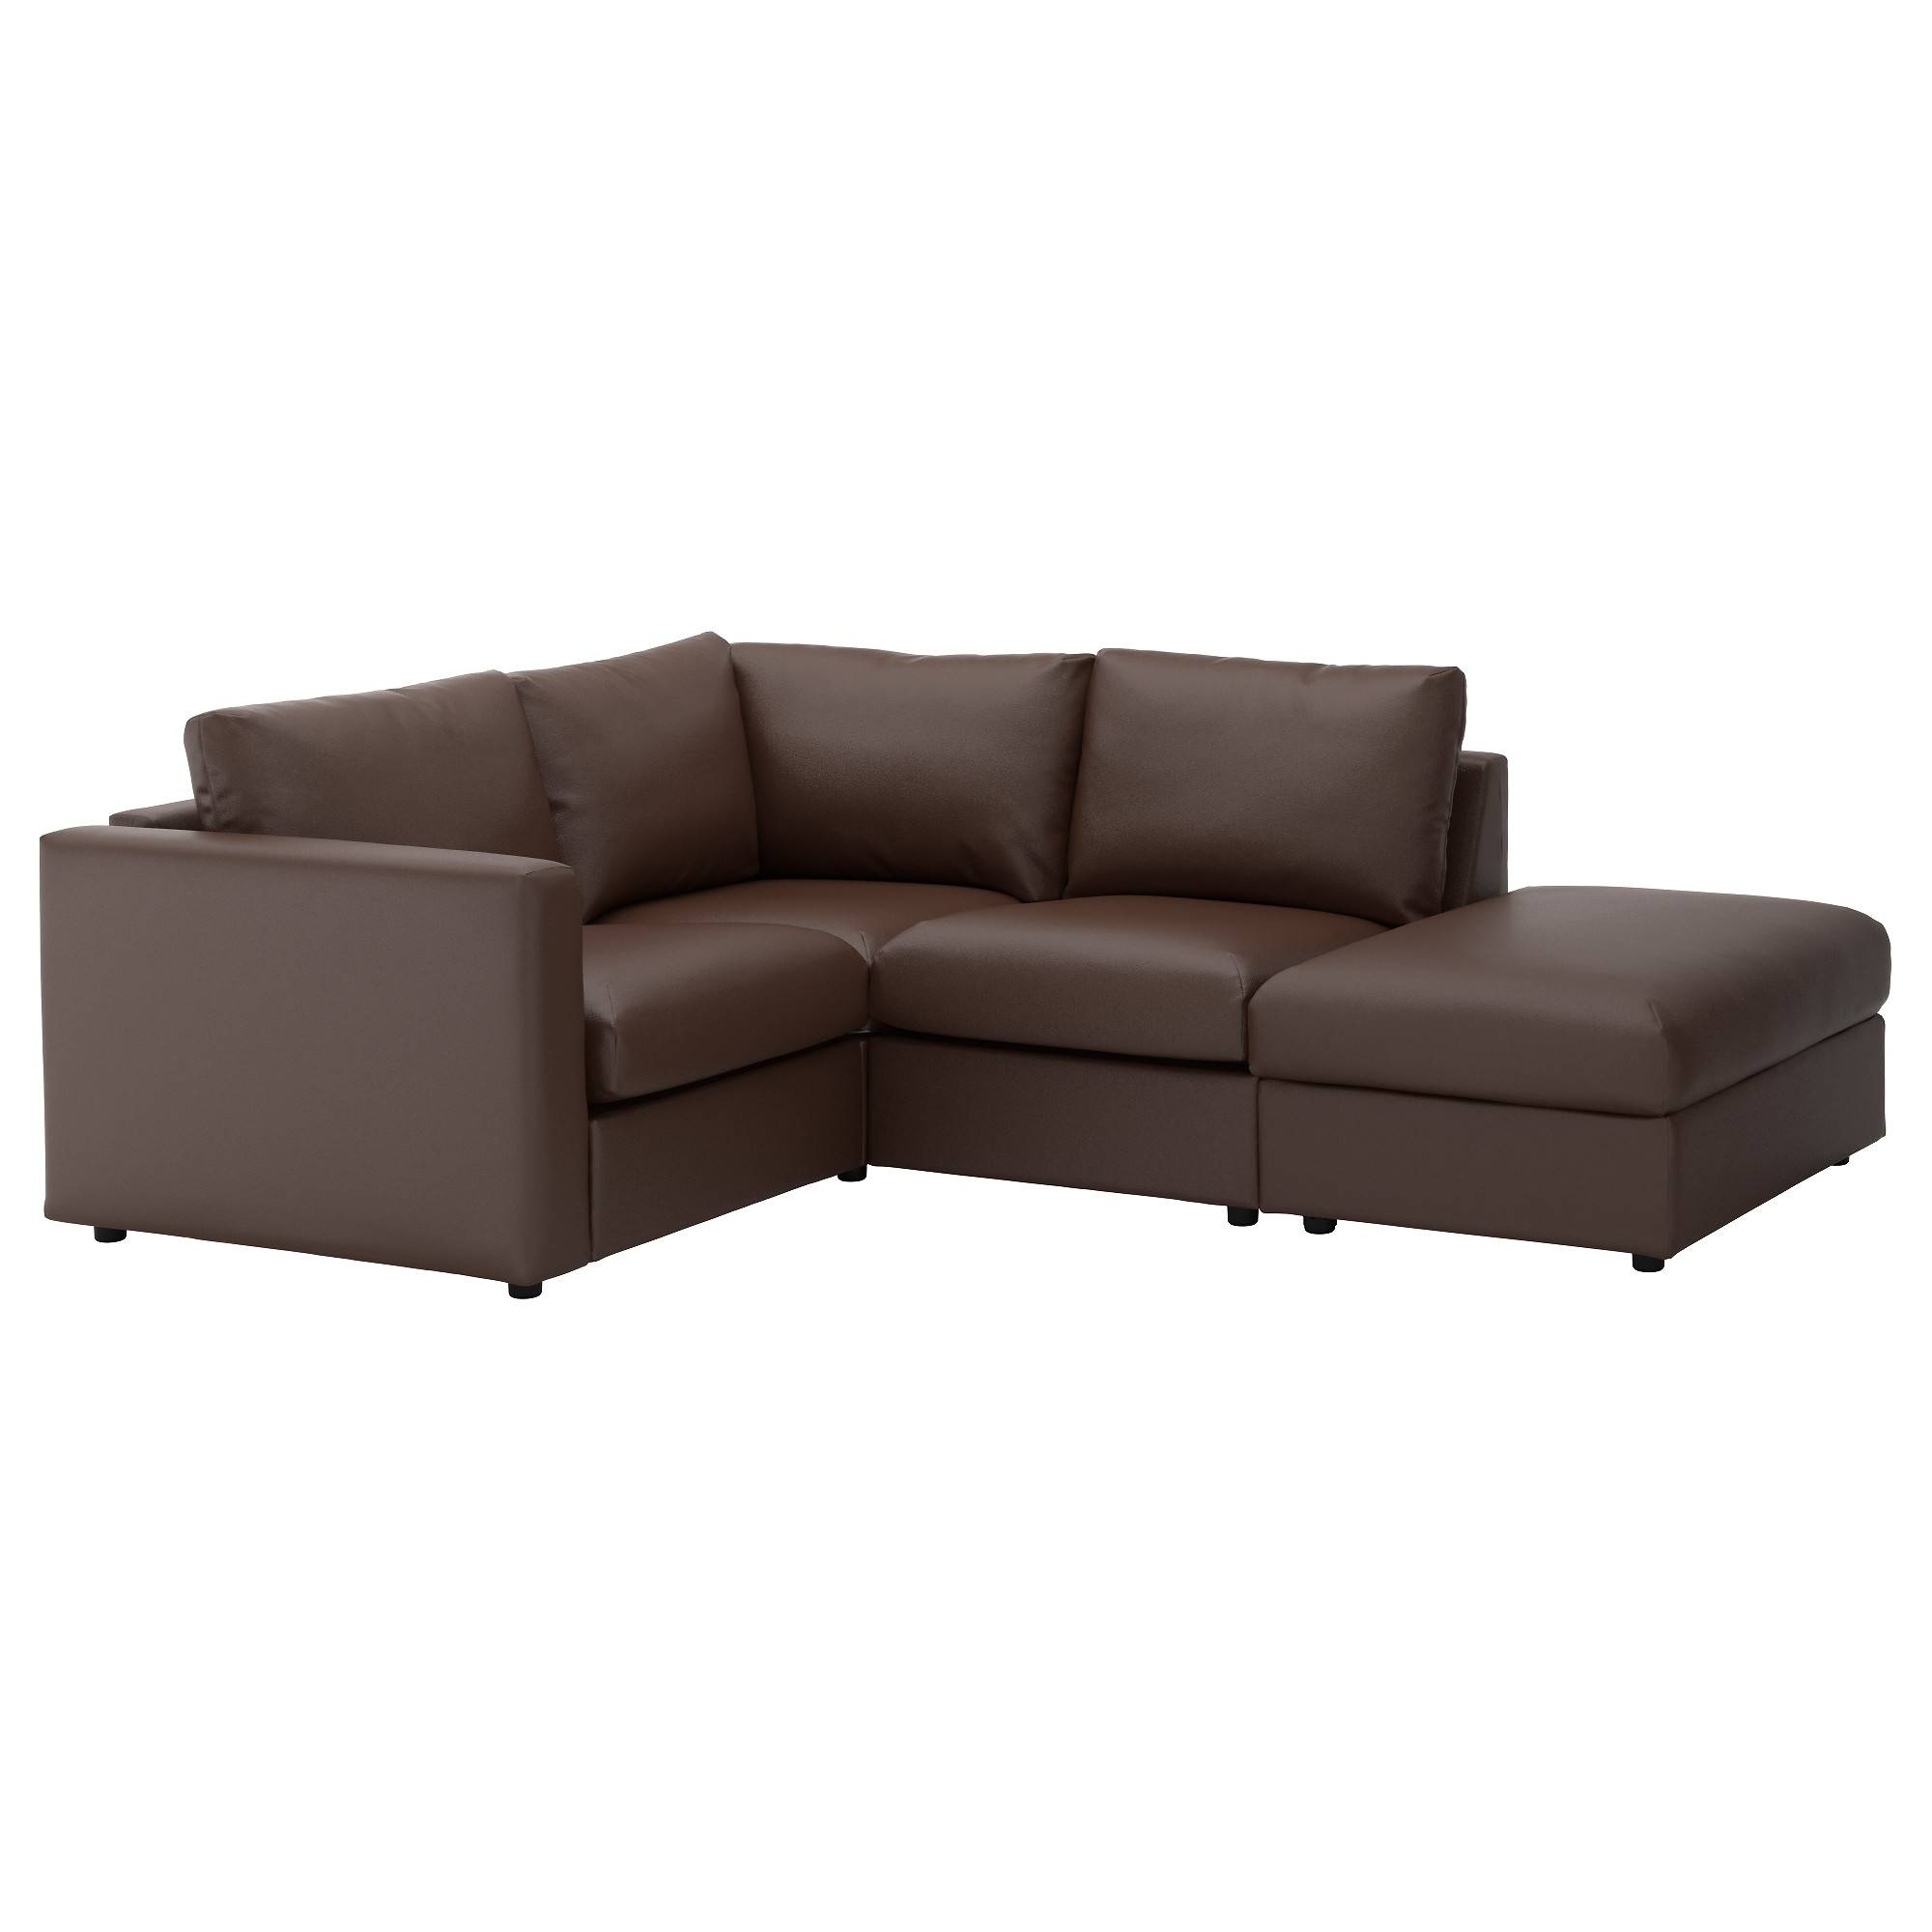 Corner Sofas | Ikea for Cheap Corner Sofas (Image 9 of 30)